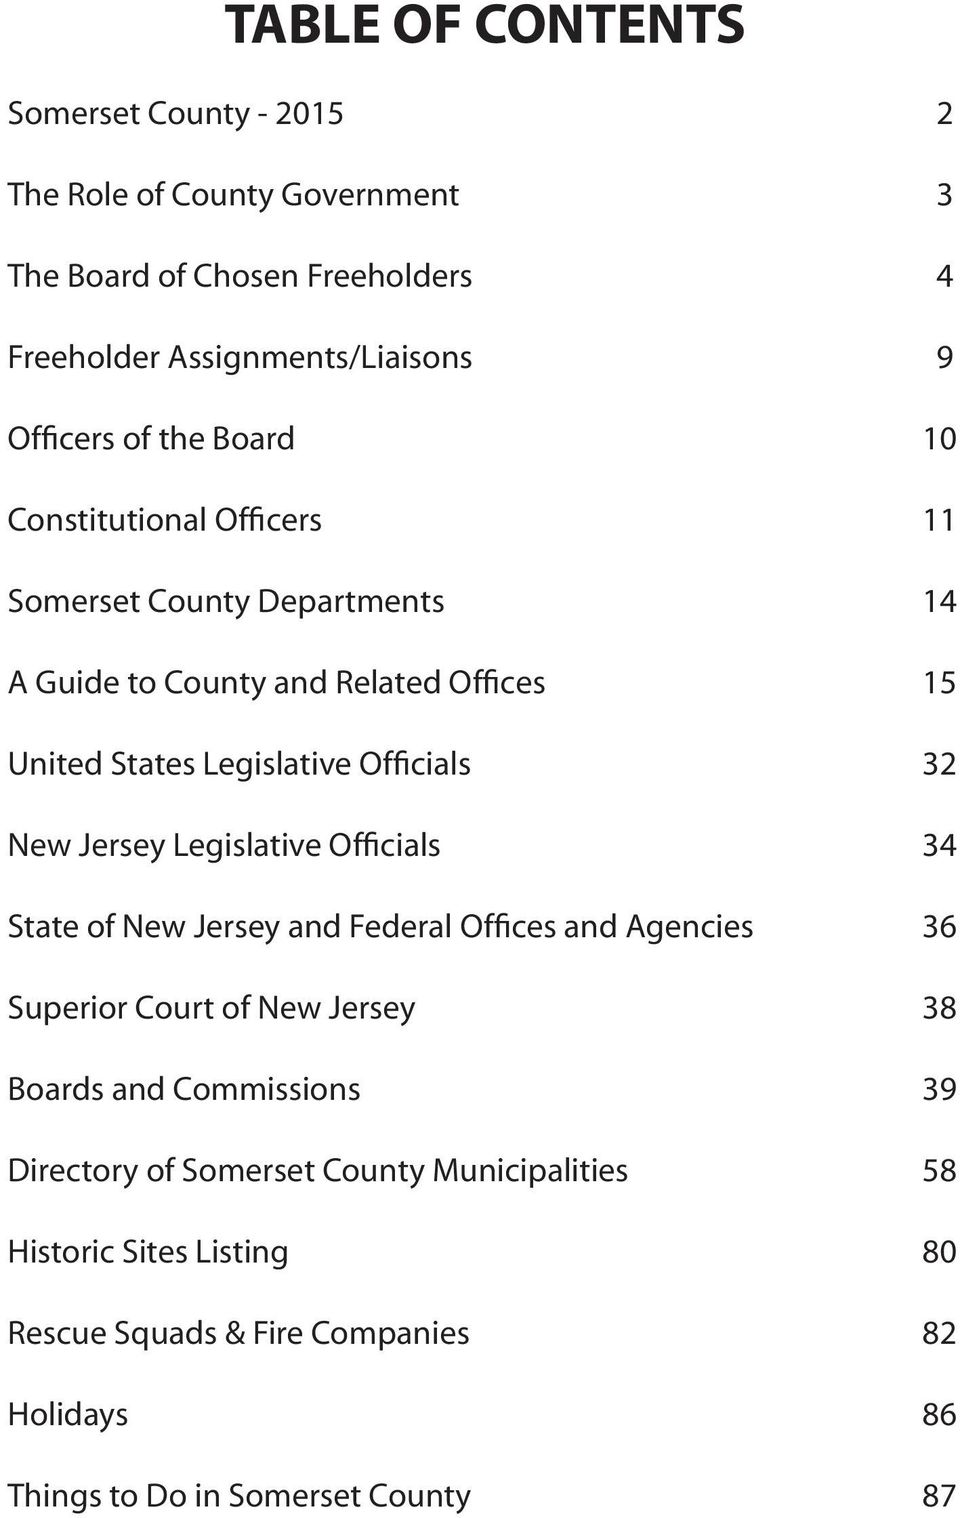 32 New Jersey Legislative Officials 34 State of New Jersey and Federal Offices and Agencies 36 Superior Court of New Jersey 38 Boards and Commissions 39